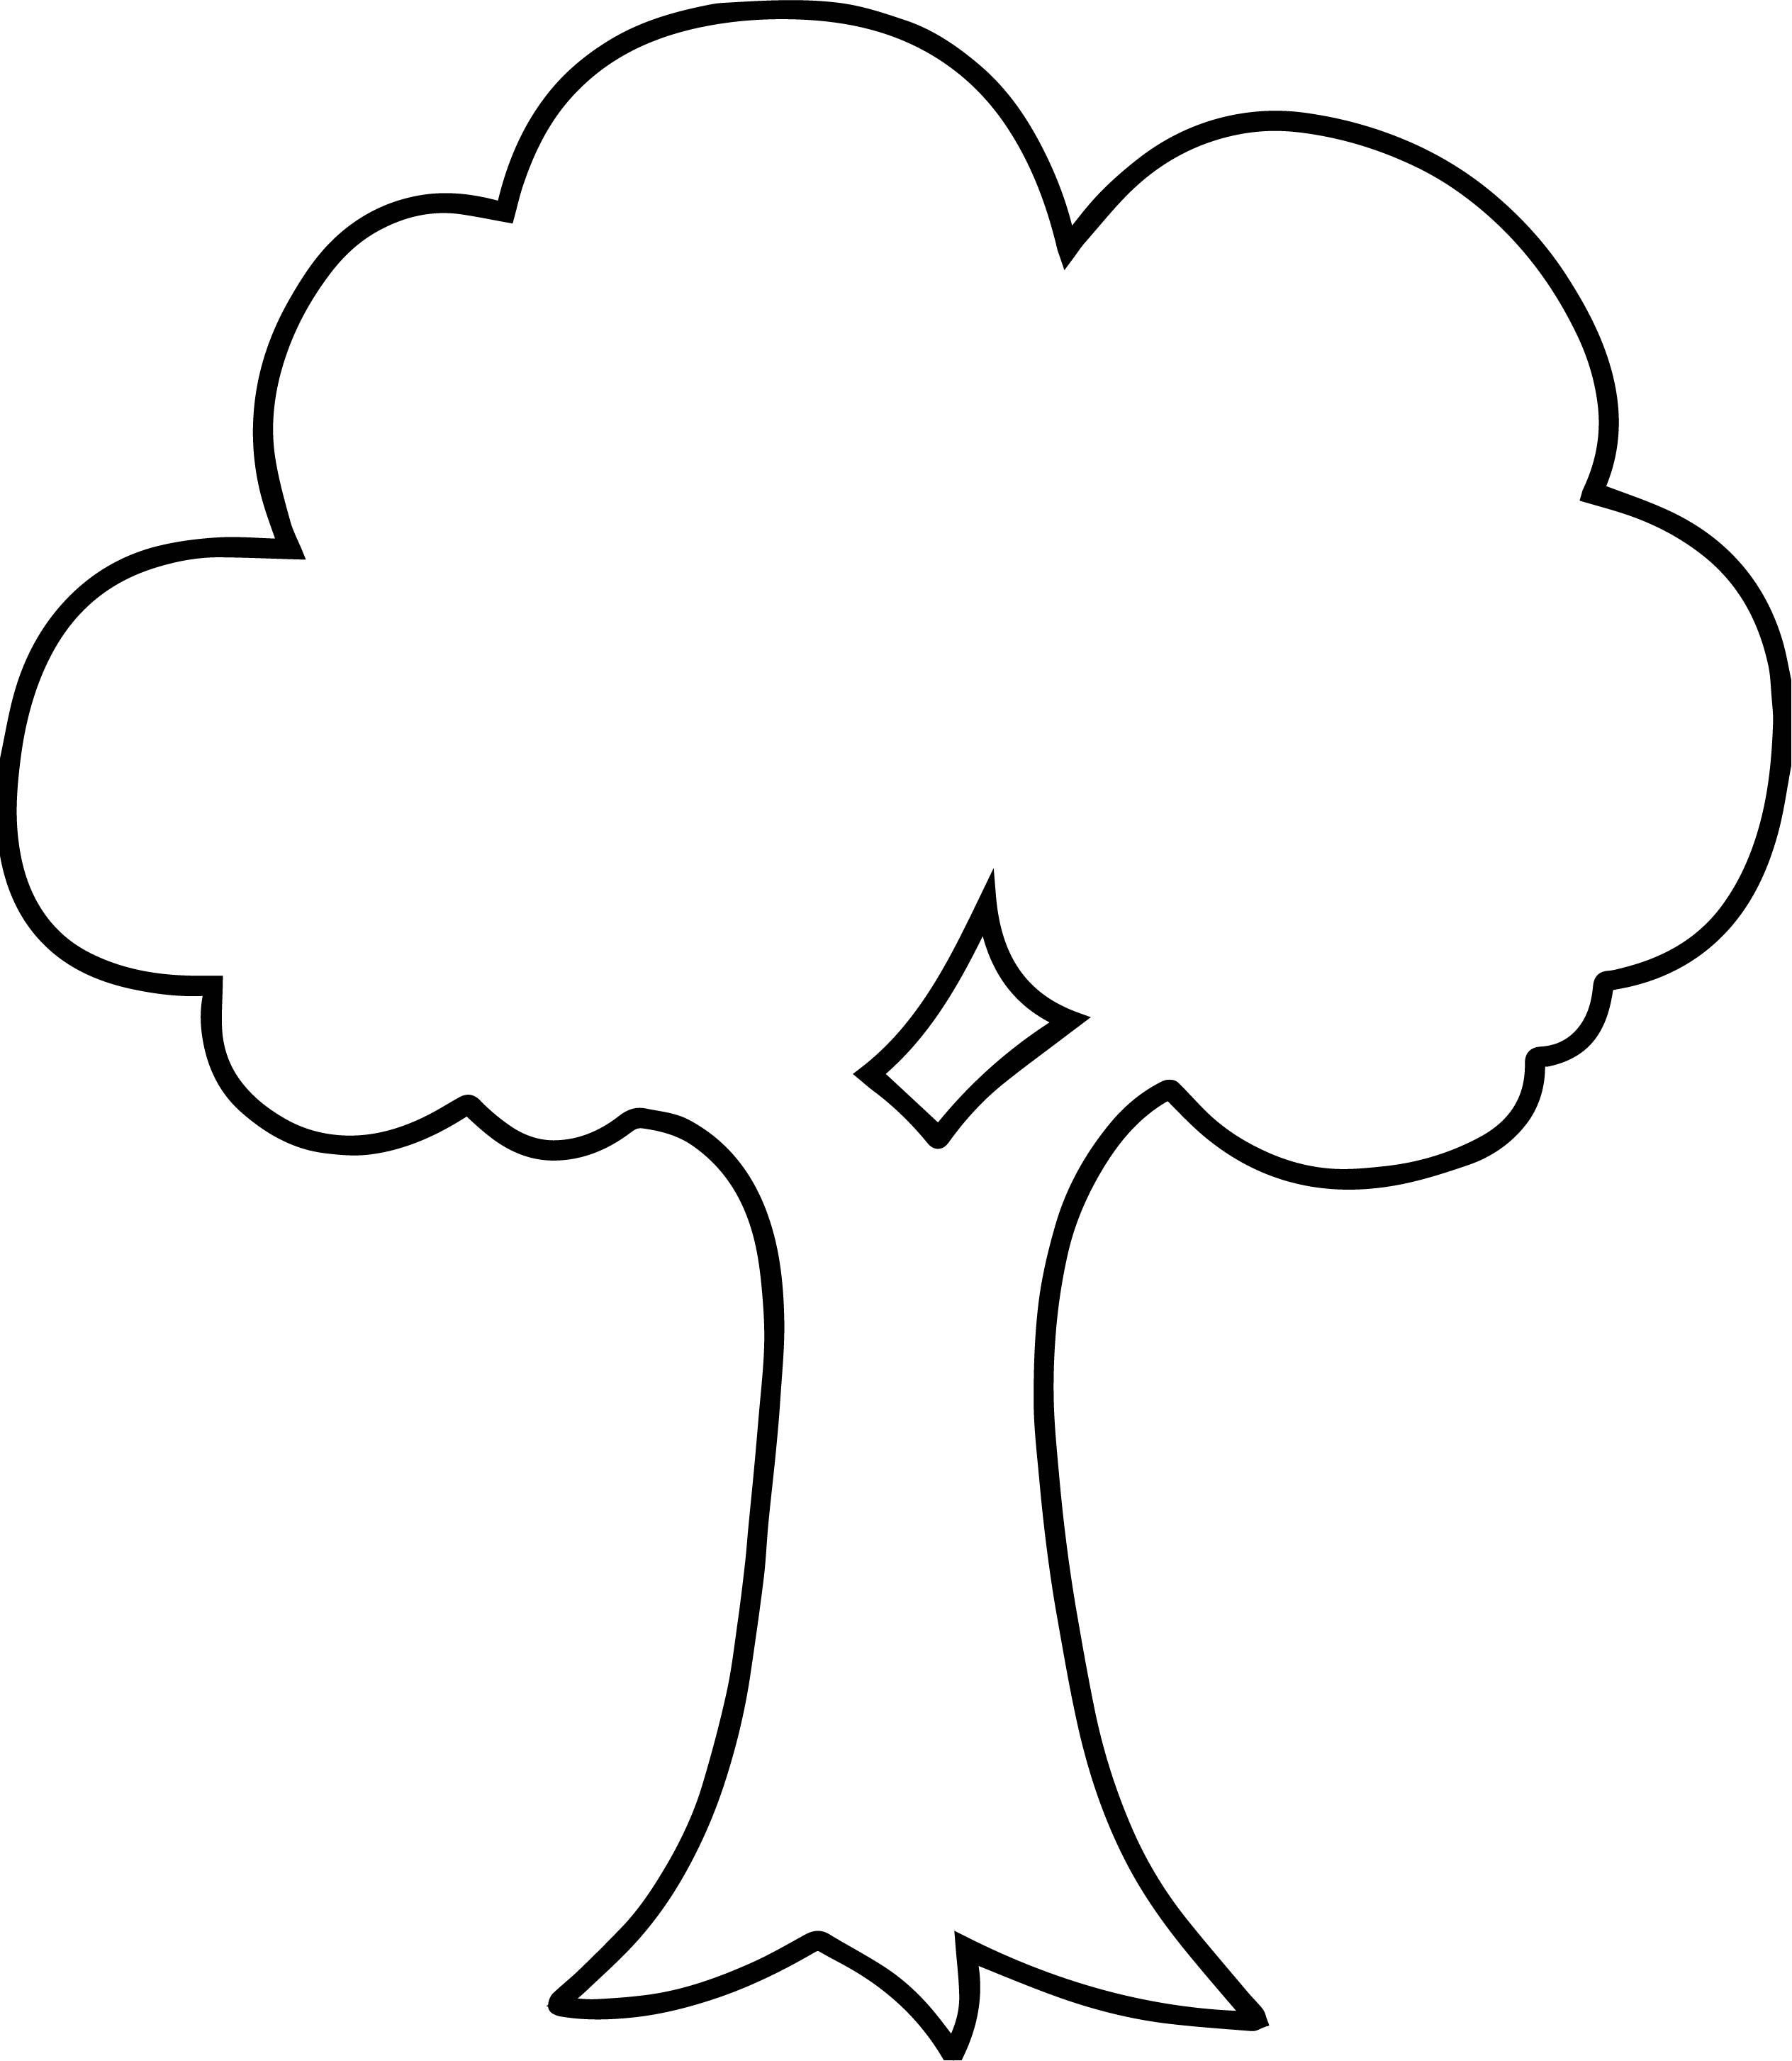 empty apple tree coloring page wecoloringpage